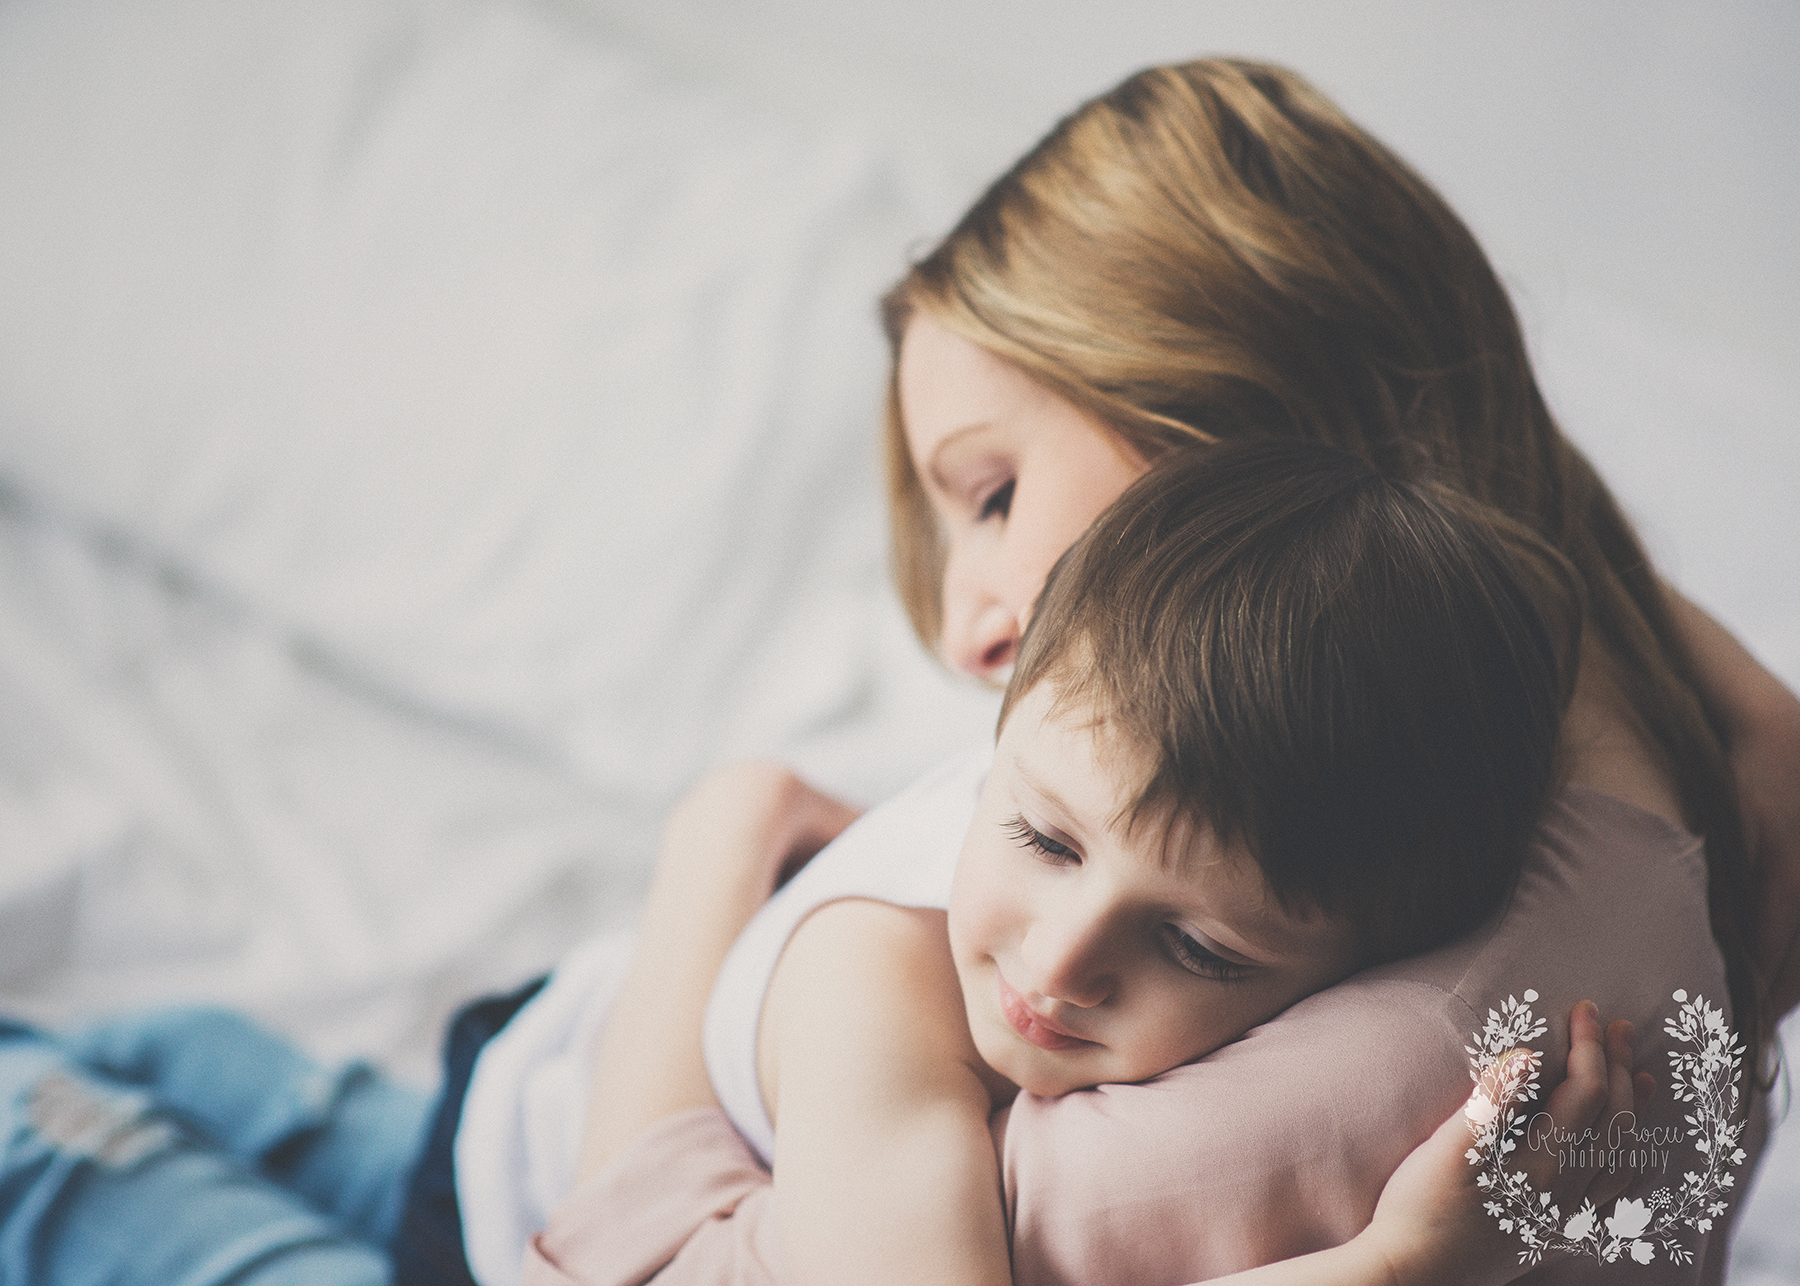 mother-child-love-family-portraits-montreal-photographer06.png